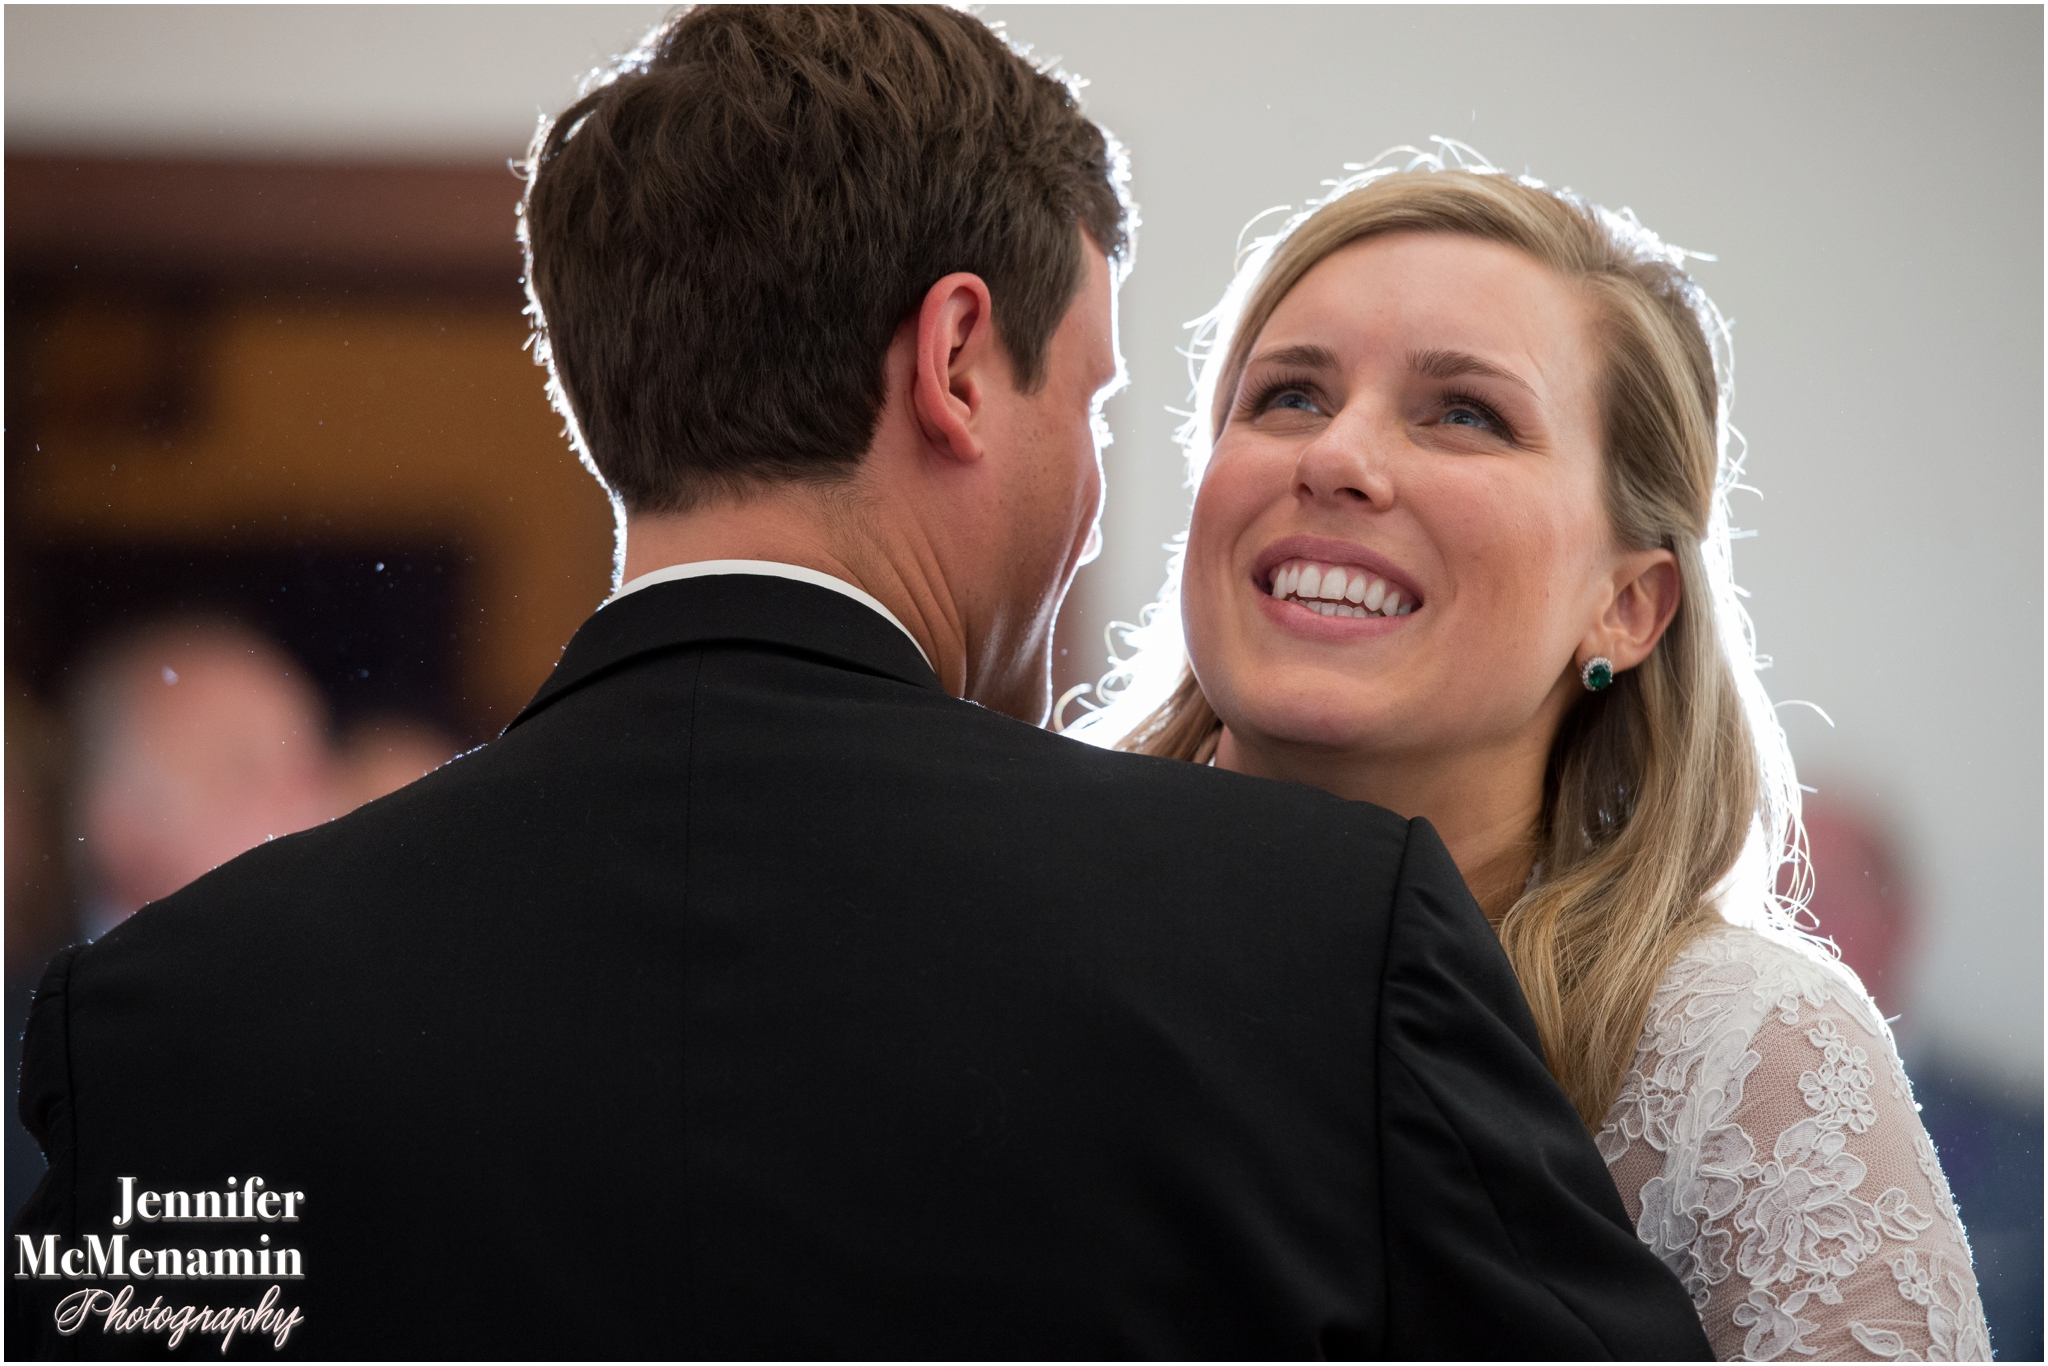 0099_RyanClemmens_02775-0736_JenniferMcMenaminPhotography_Immaculate-Conception-Church_The-Cloisters_Baltimore-wedding-photography_Baltimore-wedding-photographer